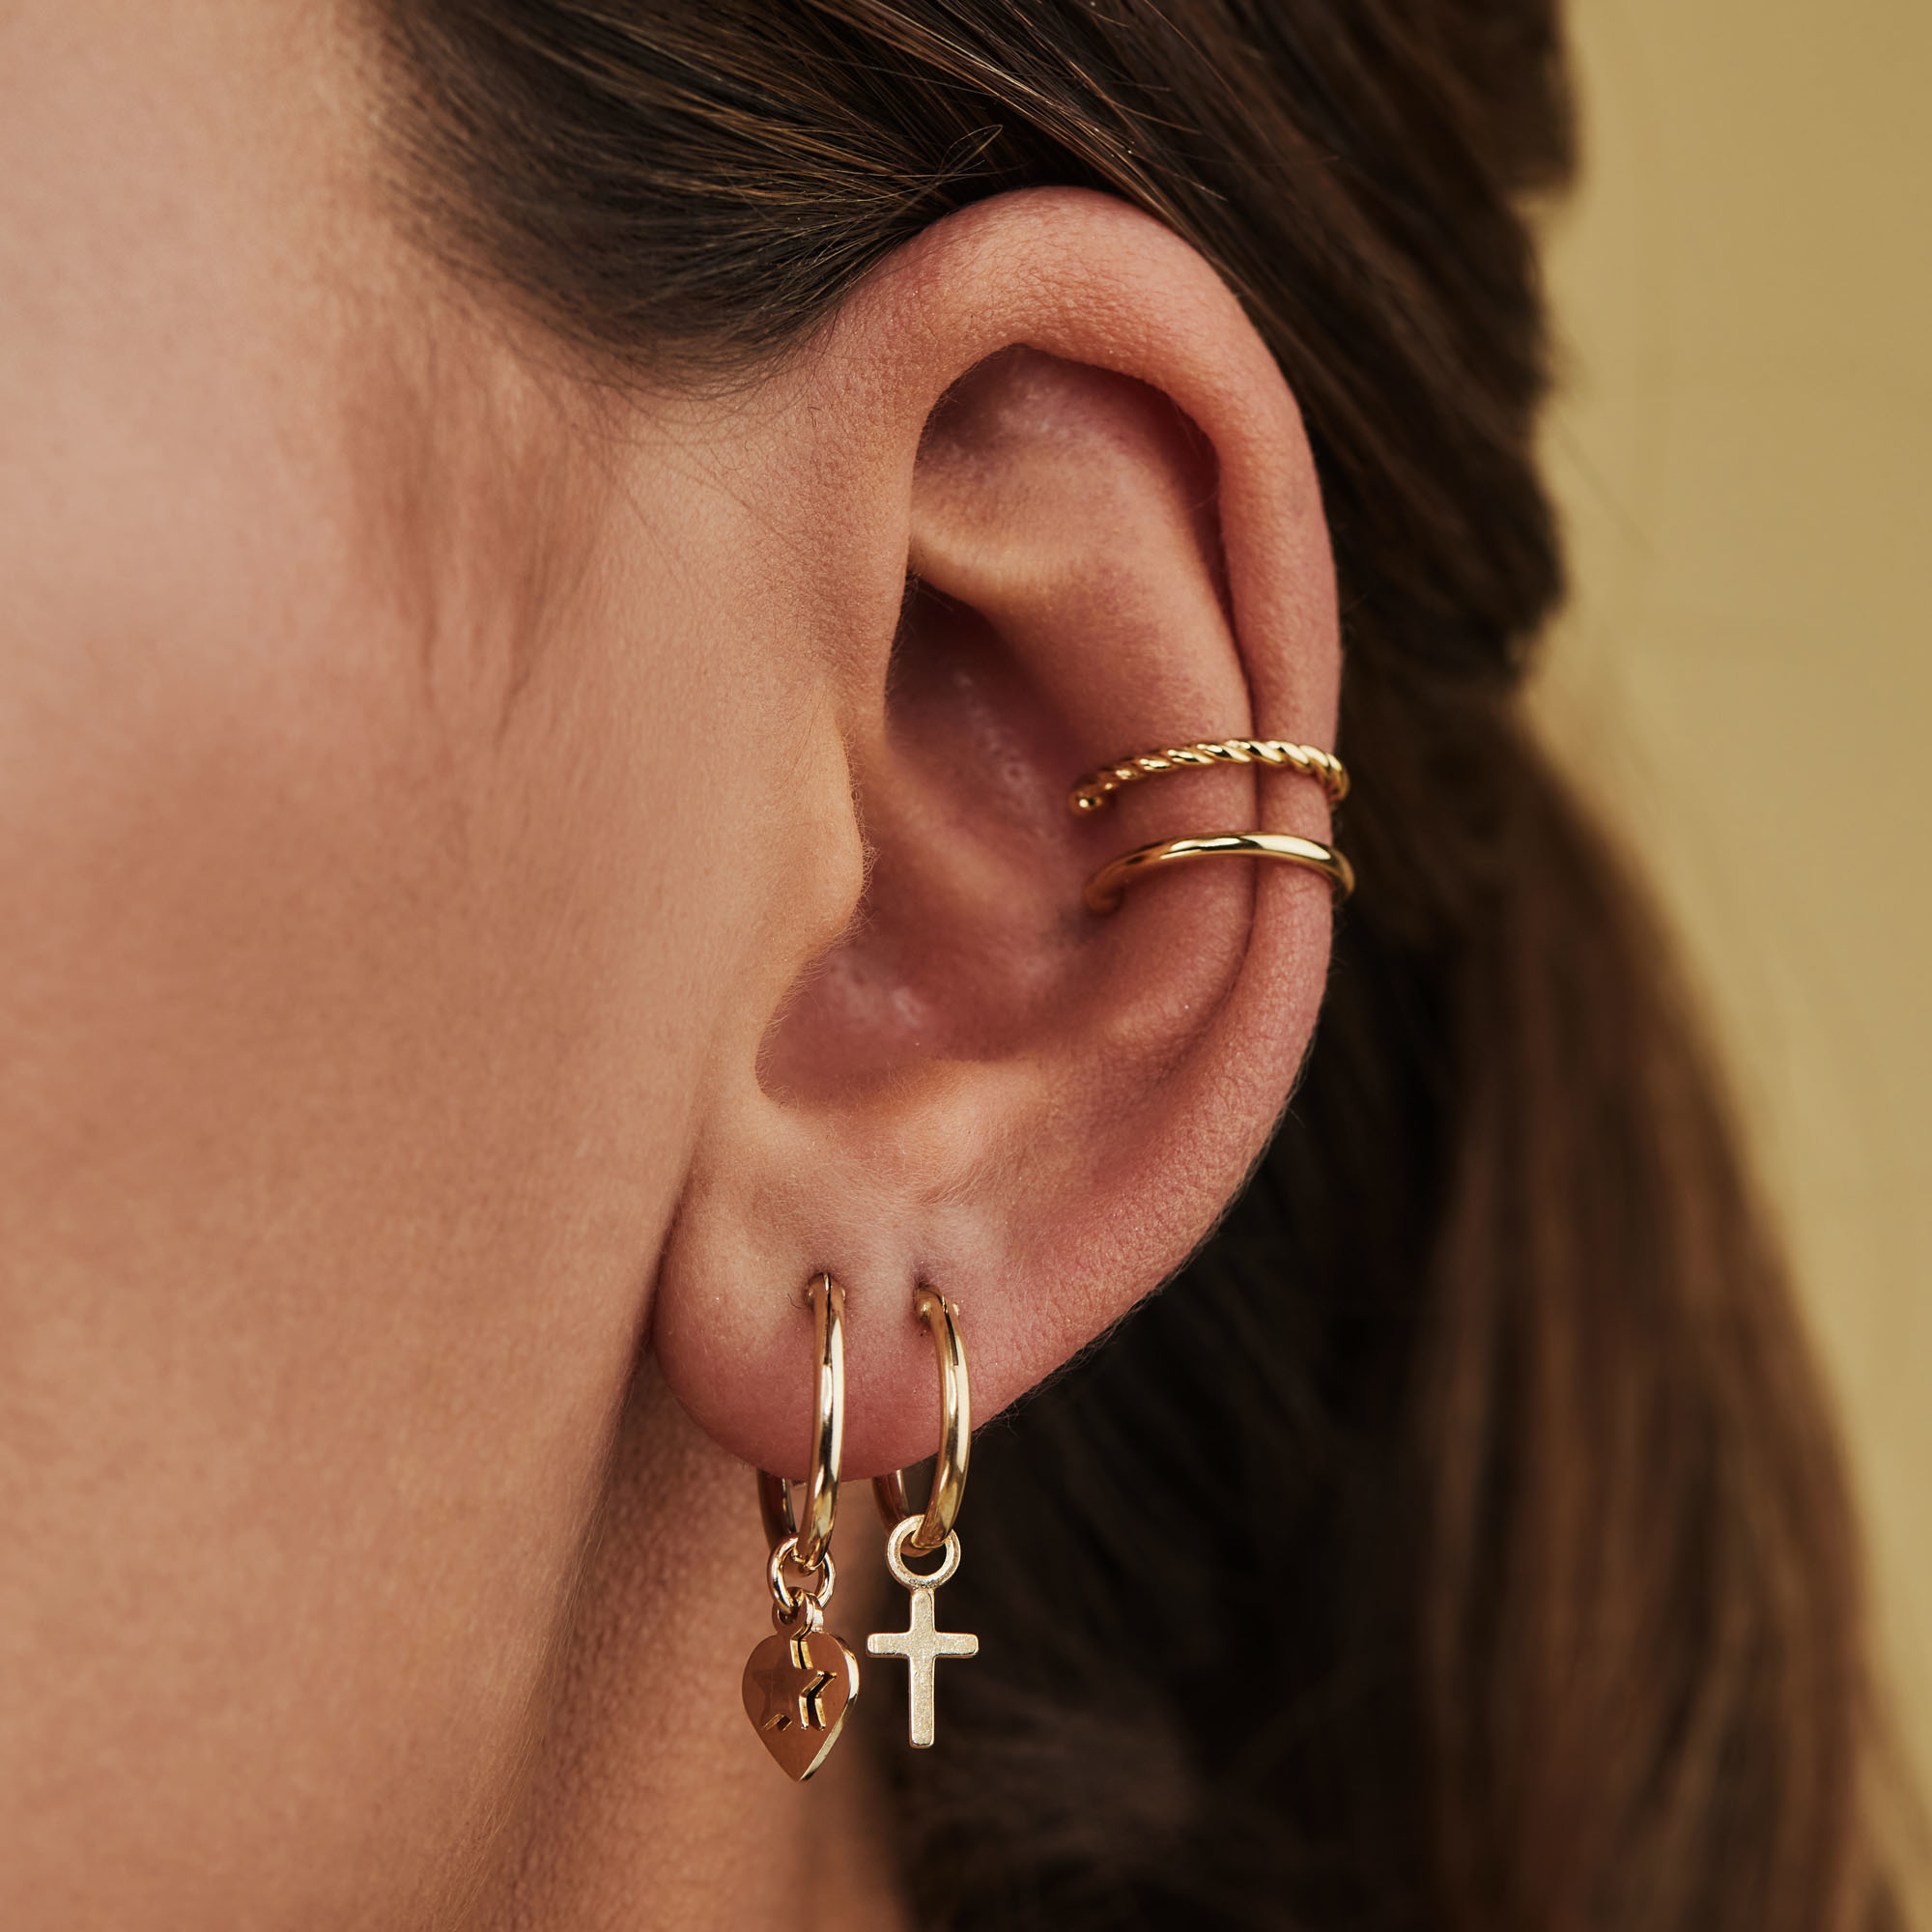 Selected Jewels Julie Esthée 925 sterling silver gold colored creoles with hearts and stars